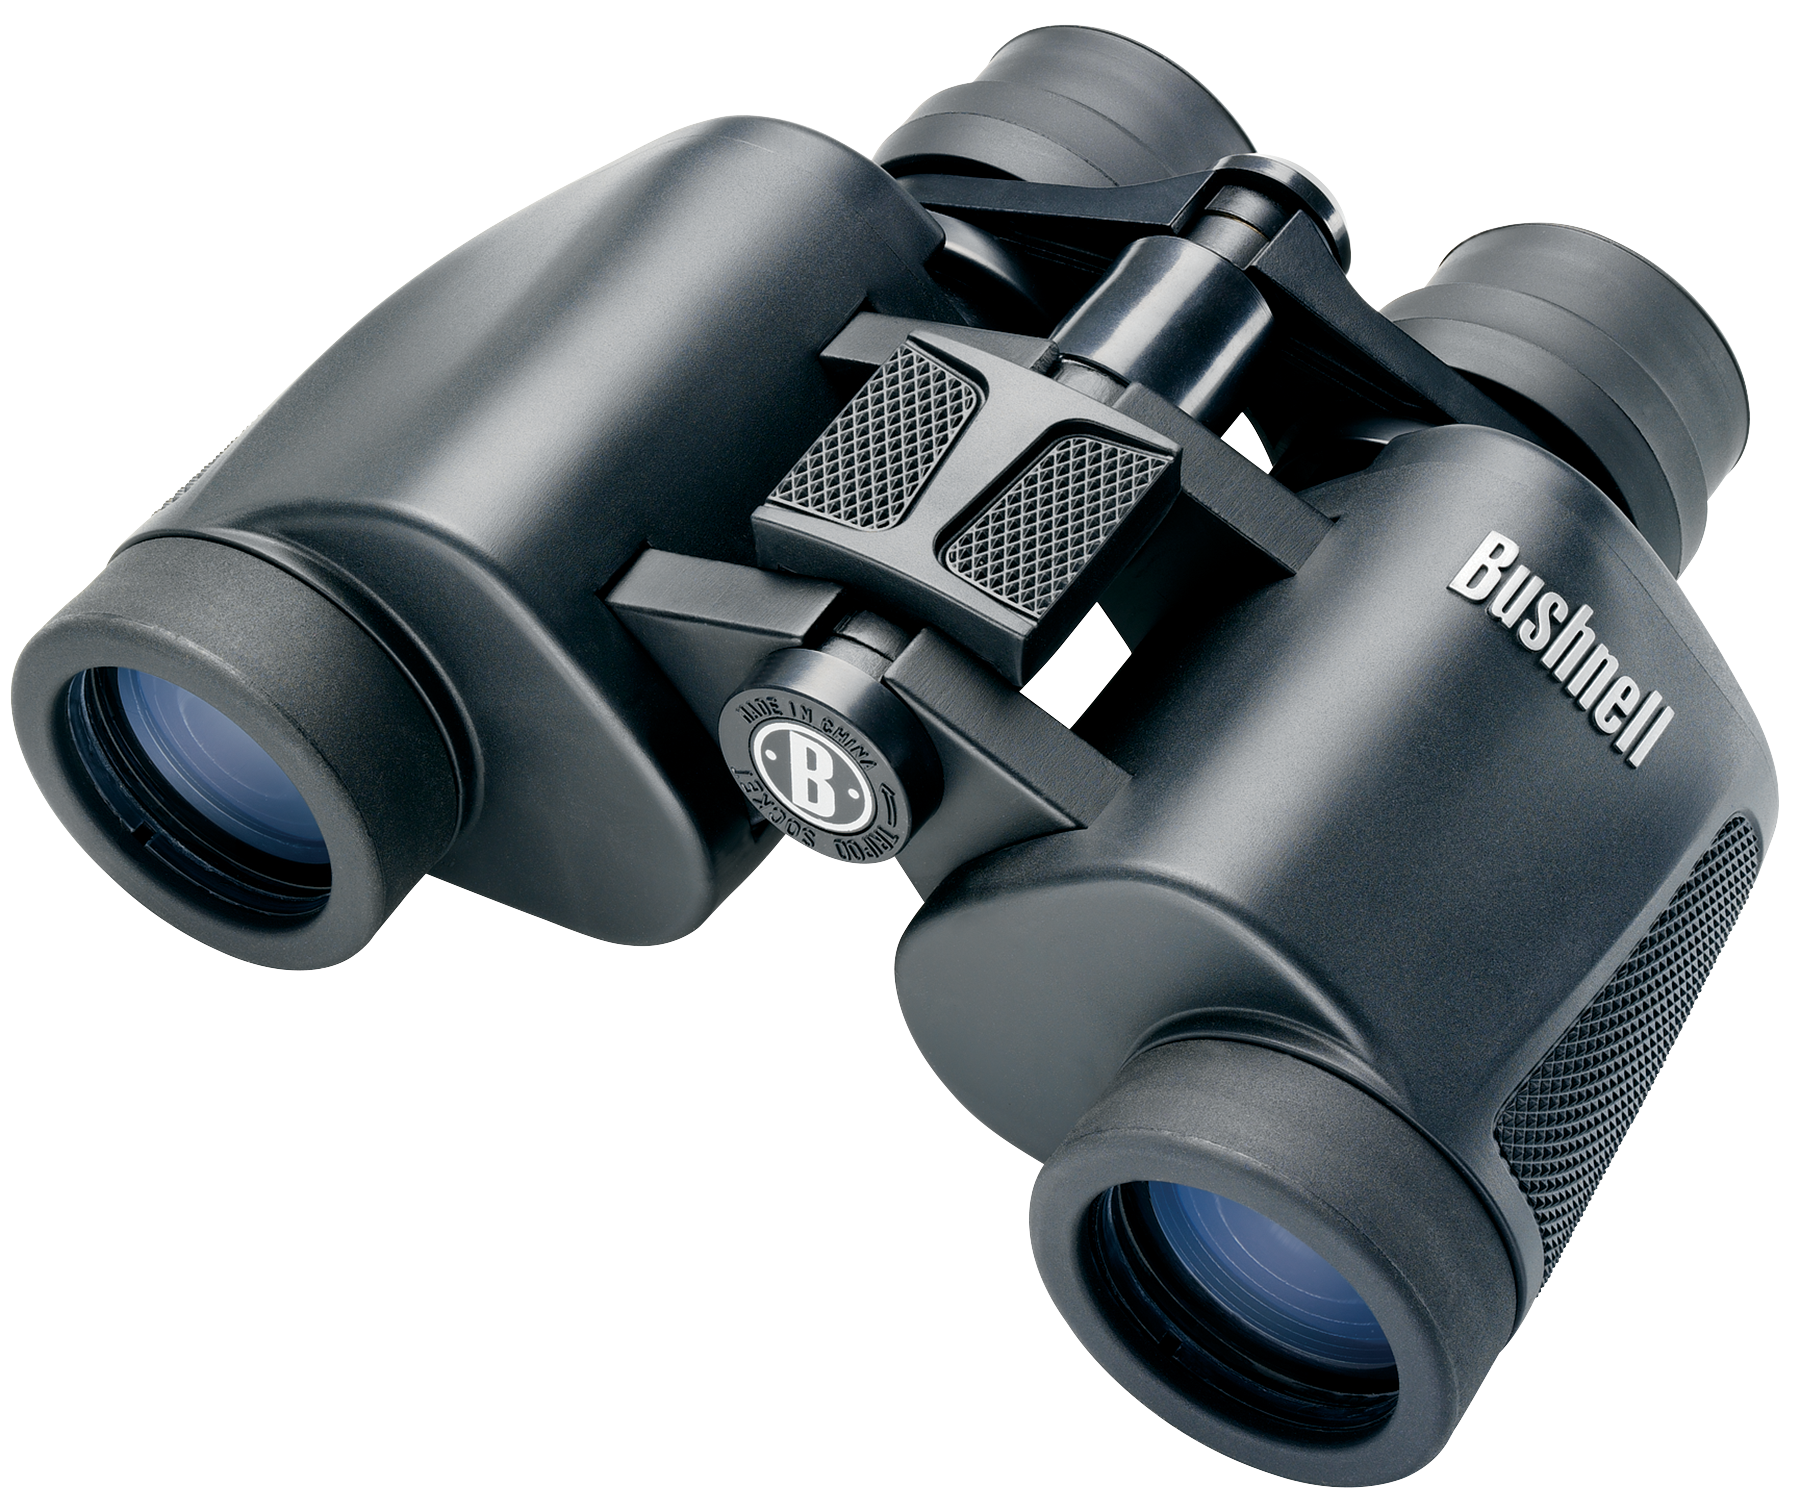 Bushnell 137307 Powerview 7x 35mm 487 ft @ 1000 yds FOV 10mm Eye Relief Black